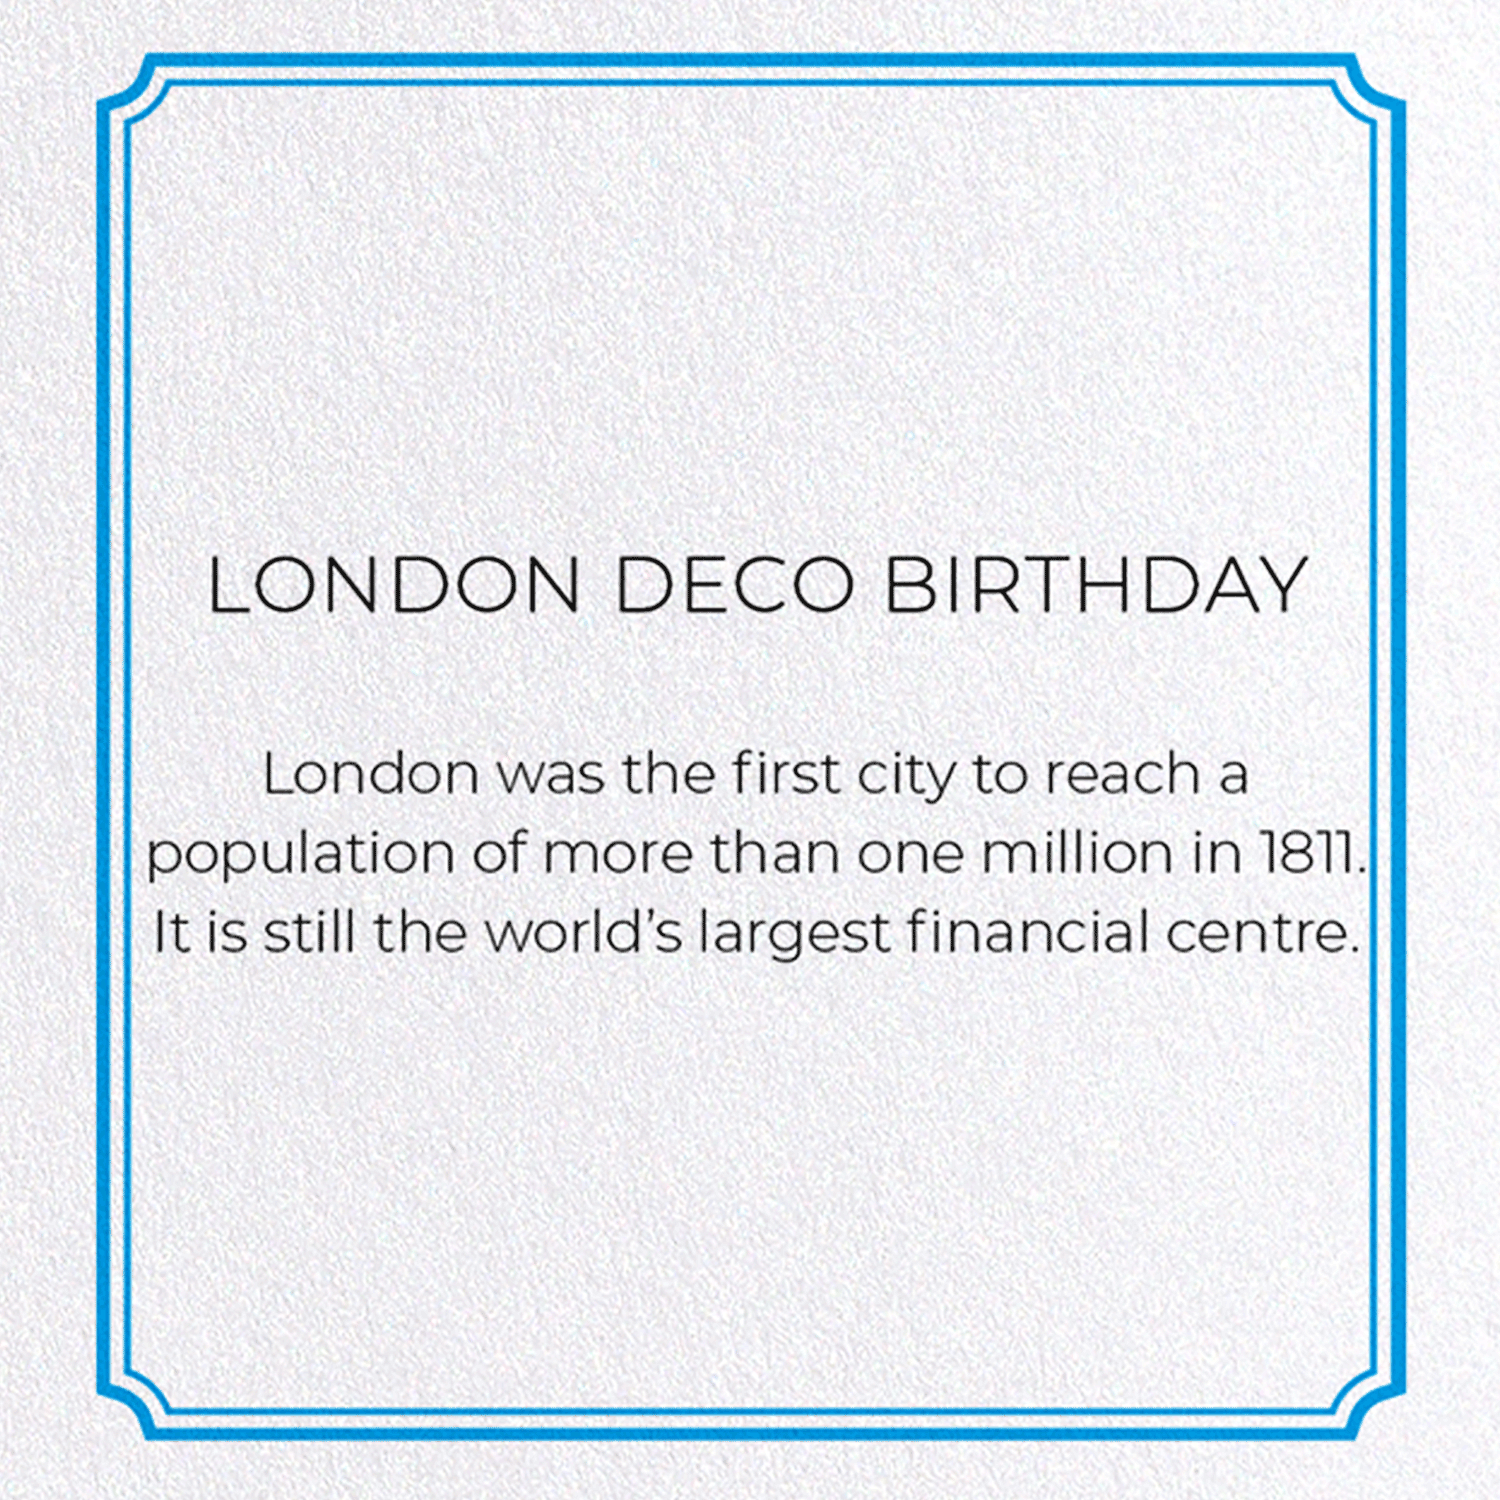 LONDON DECO BIRTHDAY